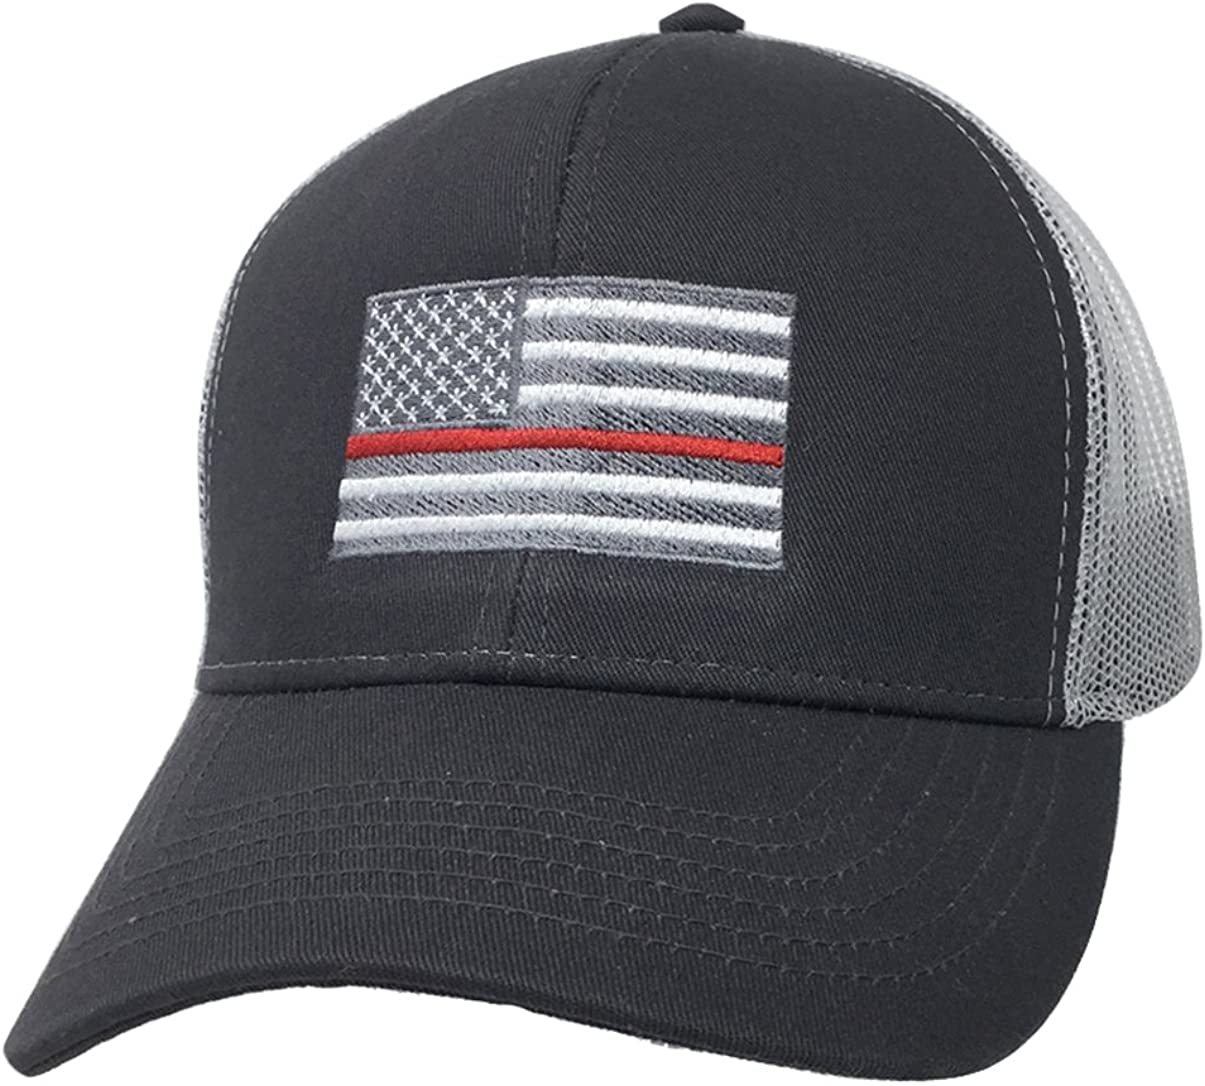 Firefighter SnapBack White American Flag w// Red Stripe